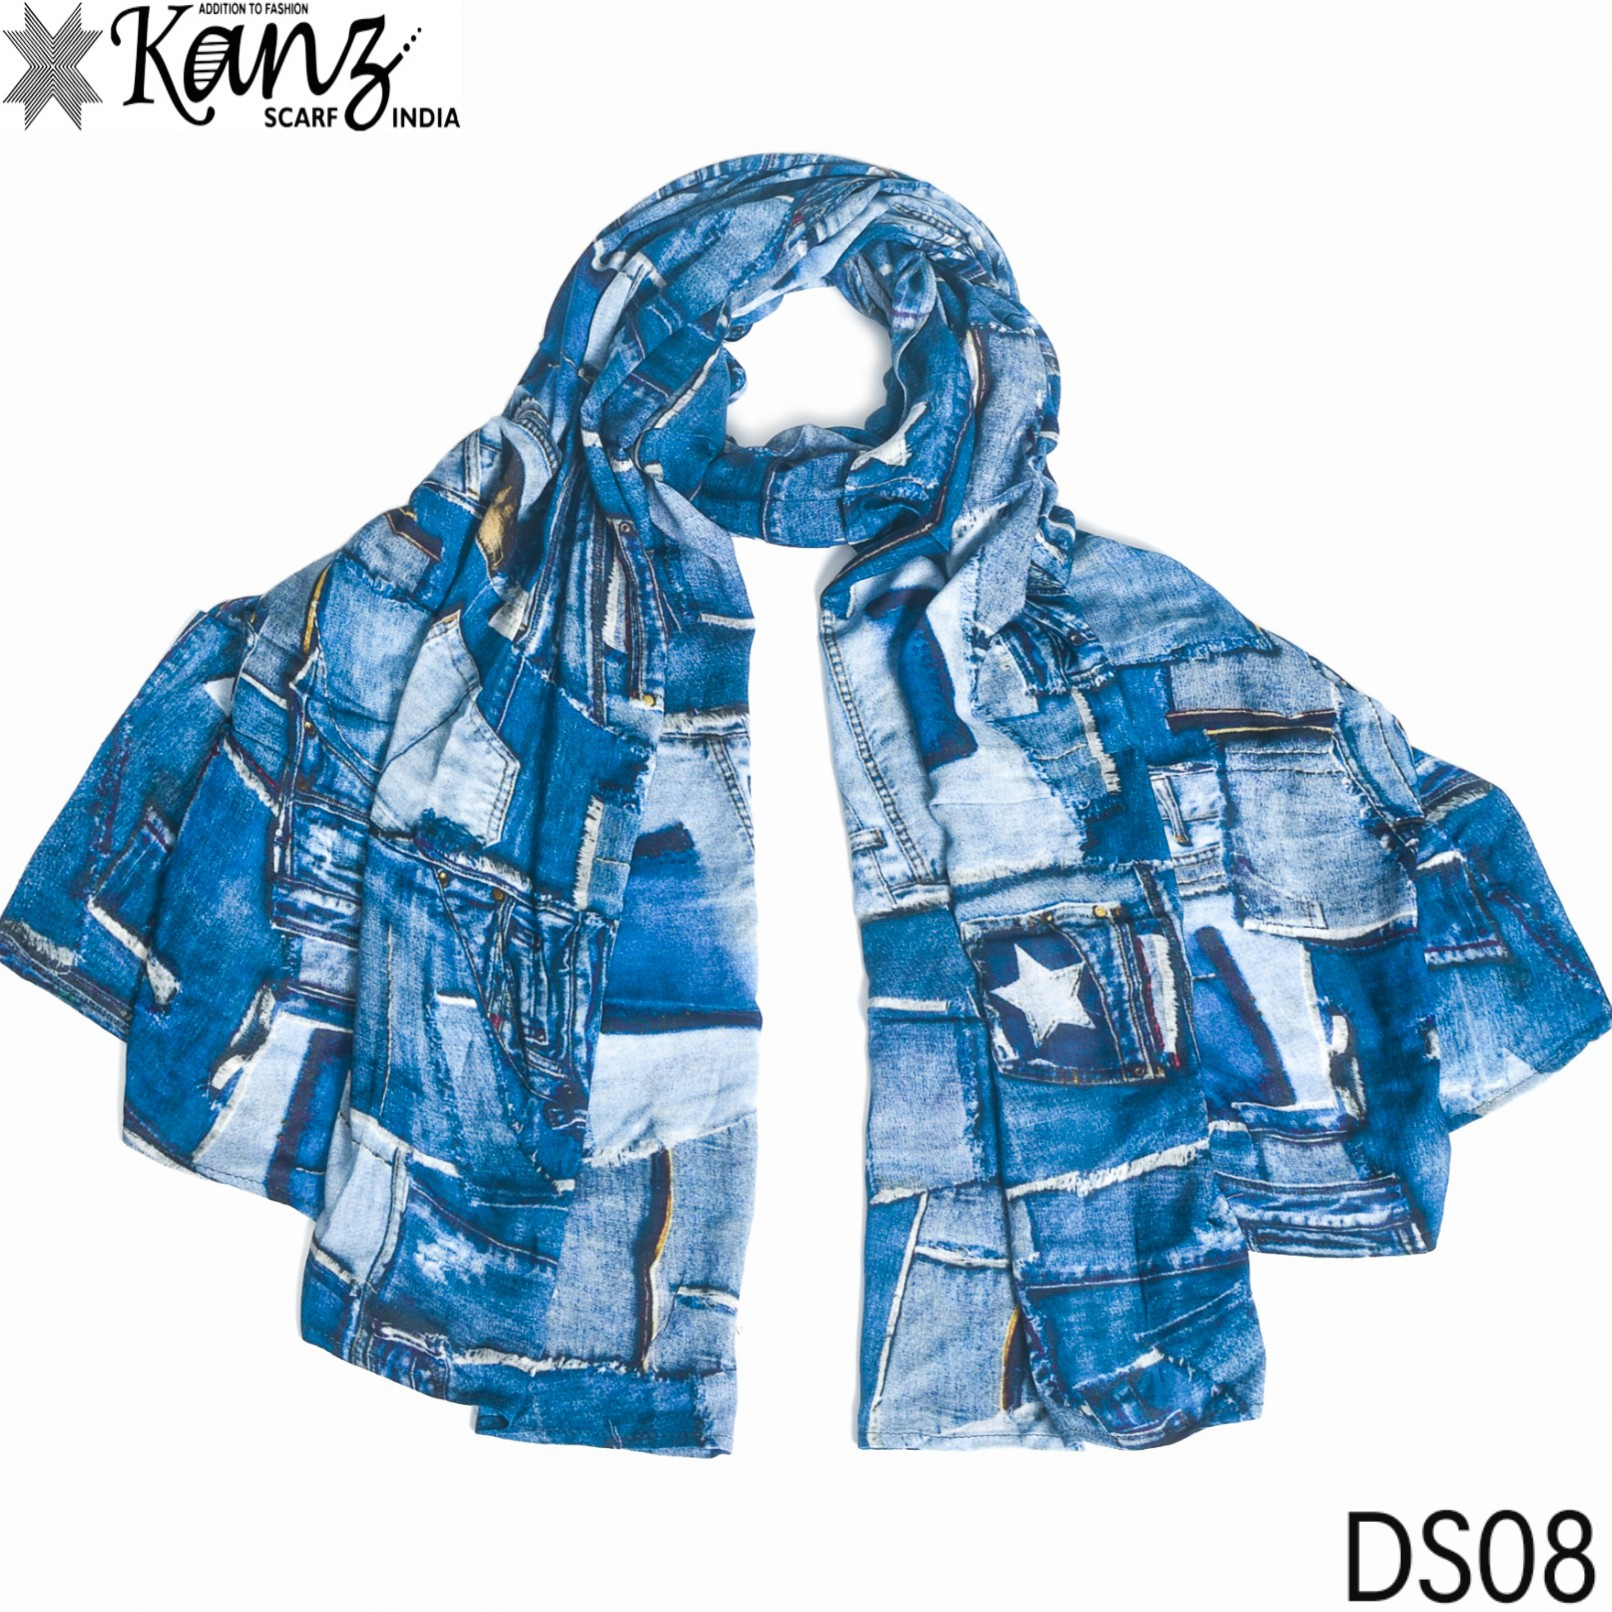 Kanz scarf denim dupatta digital printed  scarves collection